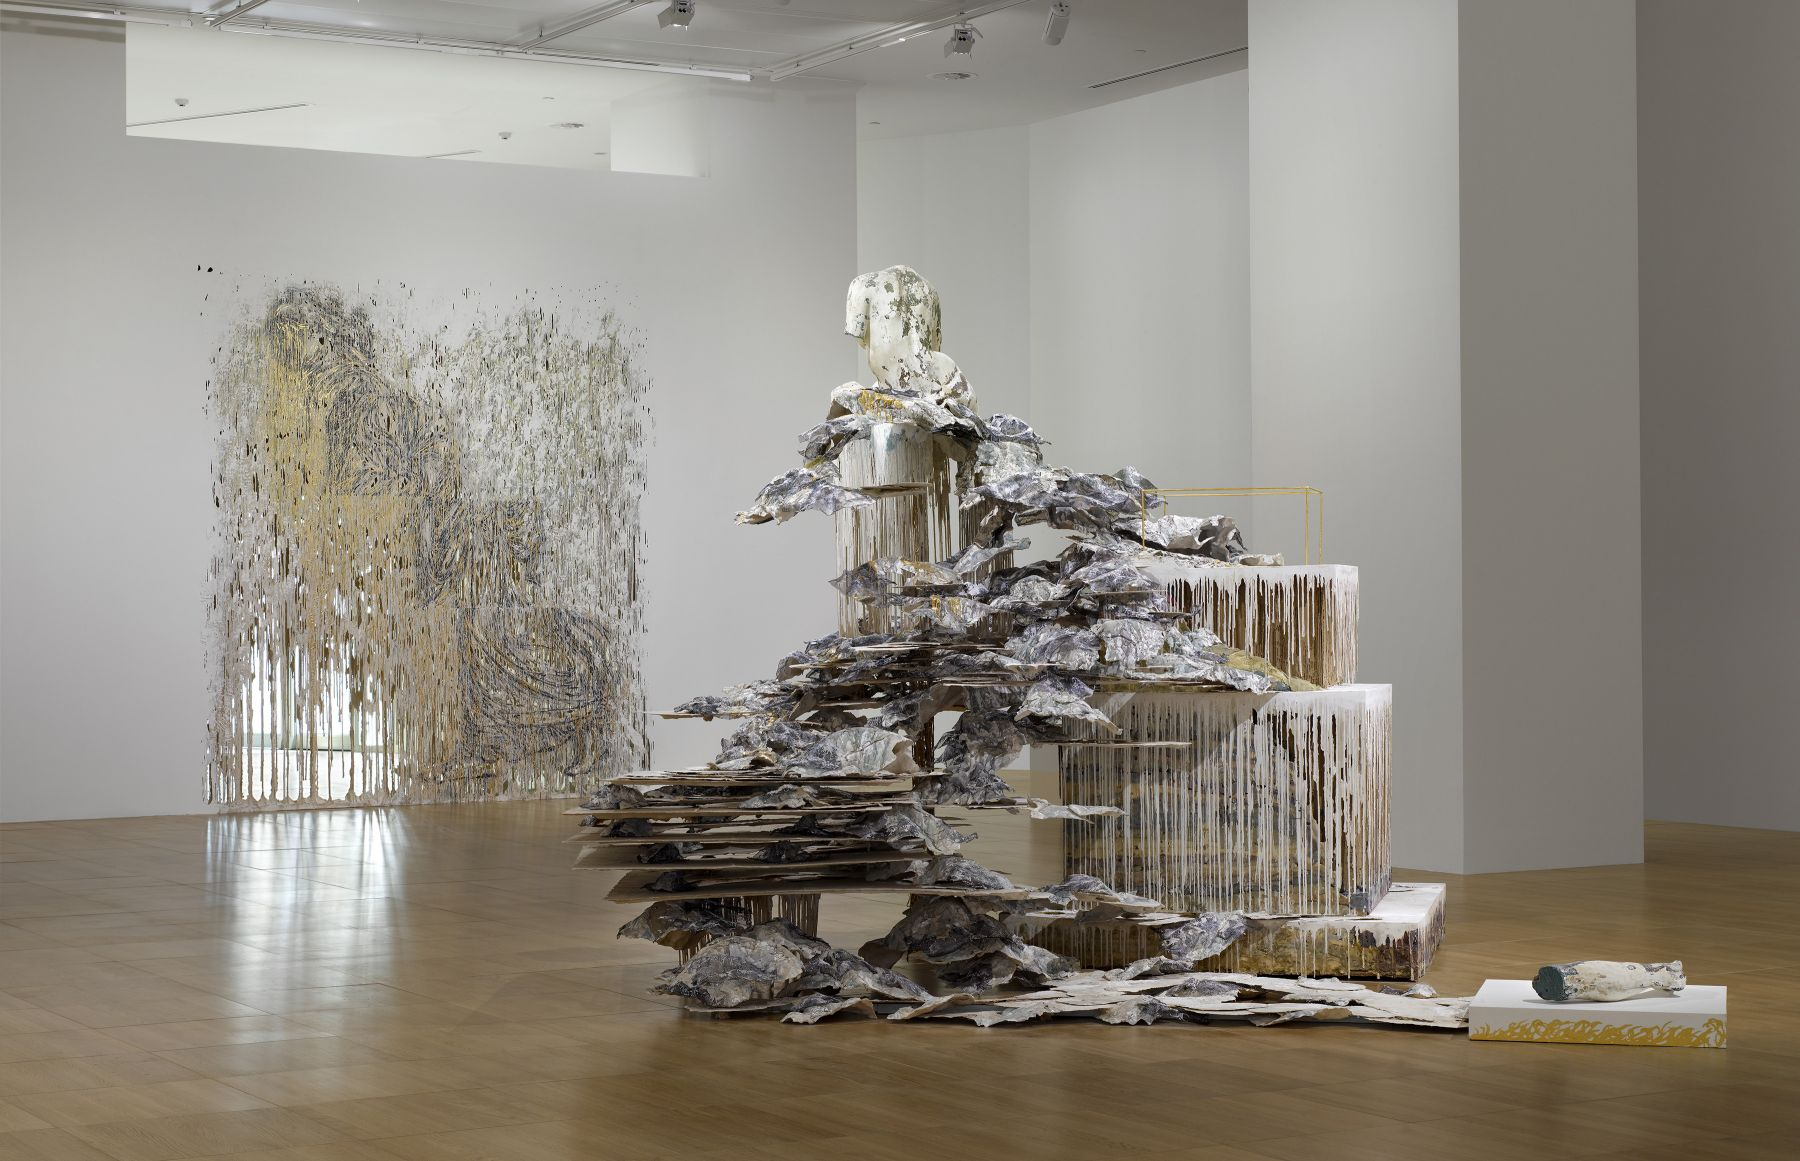 a view of a contemporary art gallery exhibiting the works of Diana Al-Hadid